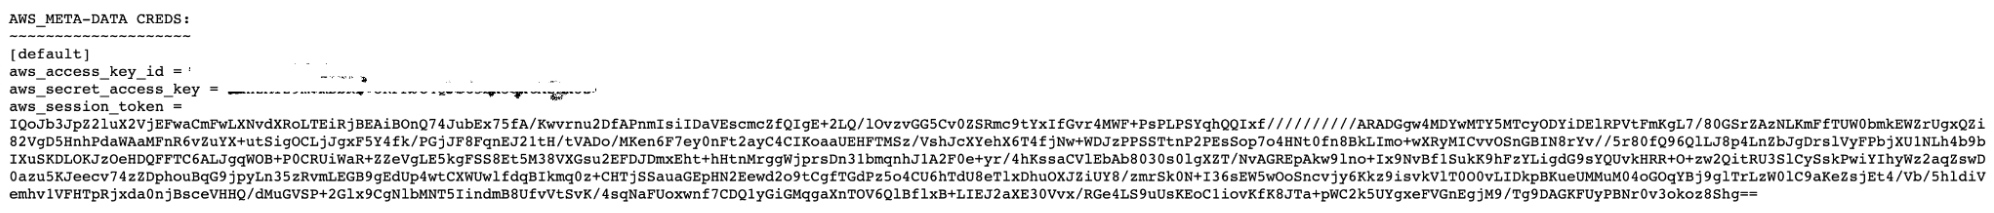 Example of Stolen Credentials File